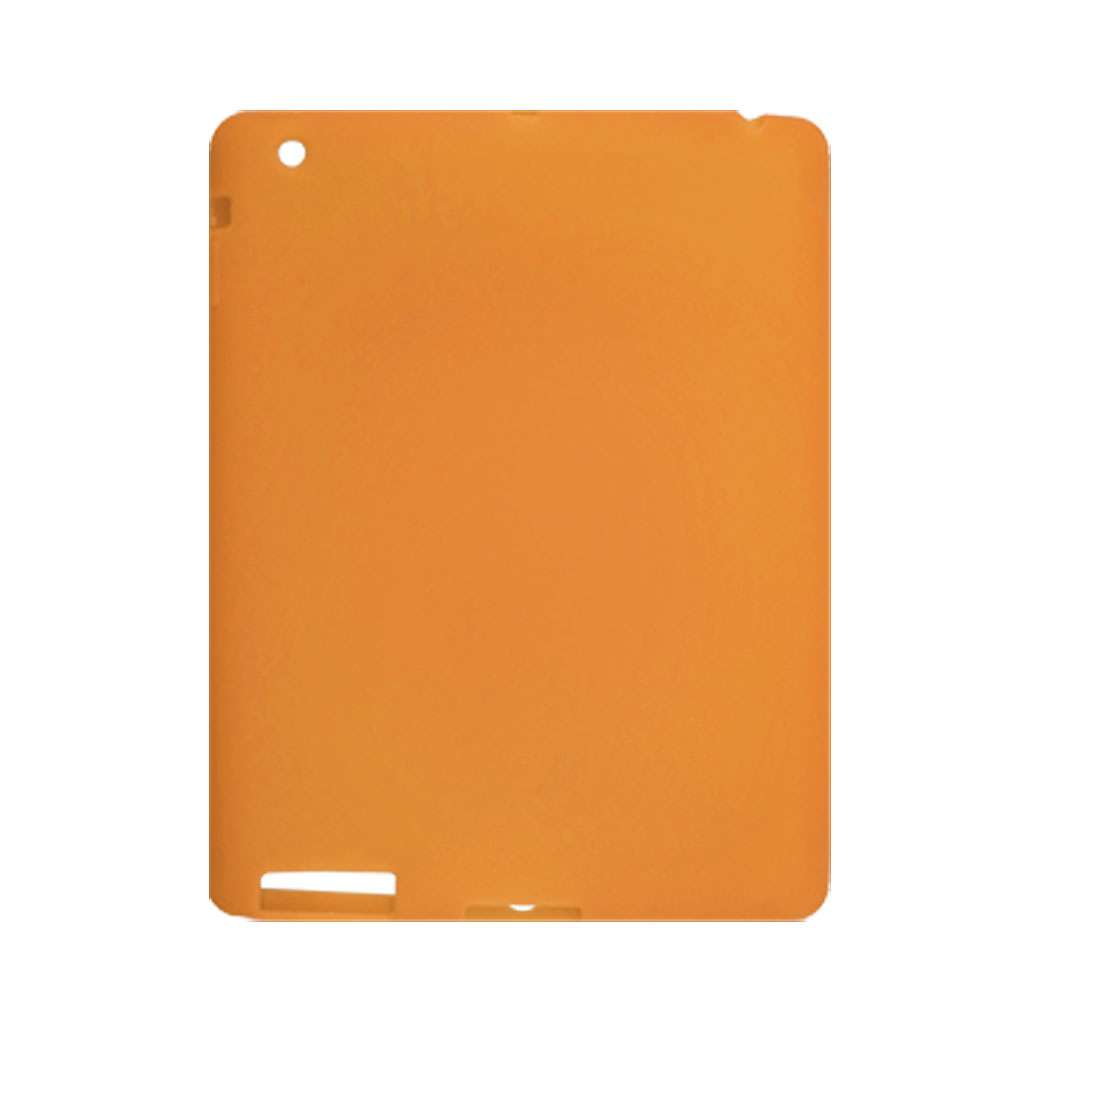 Orange Protective Silicone Skin Case Shell for iPad 2G